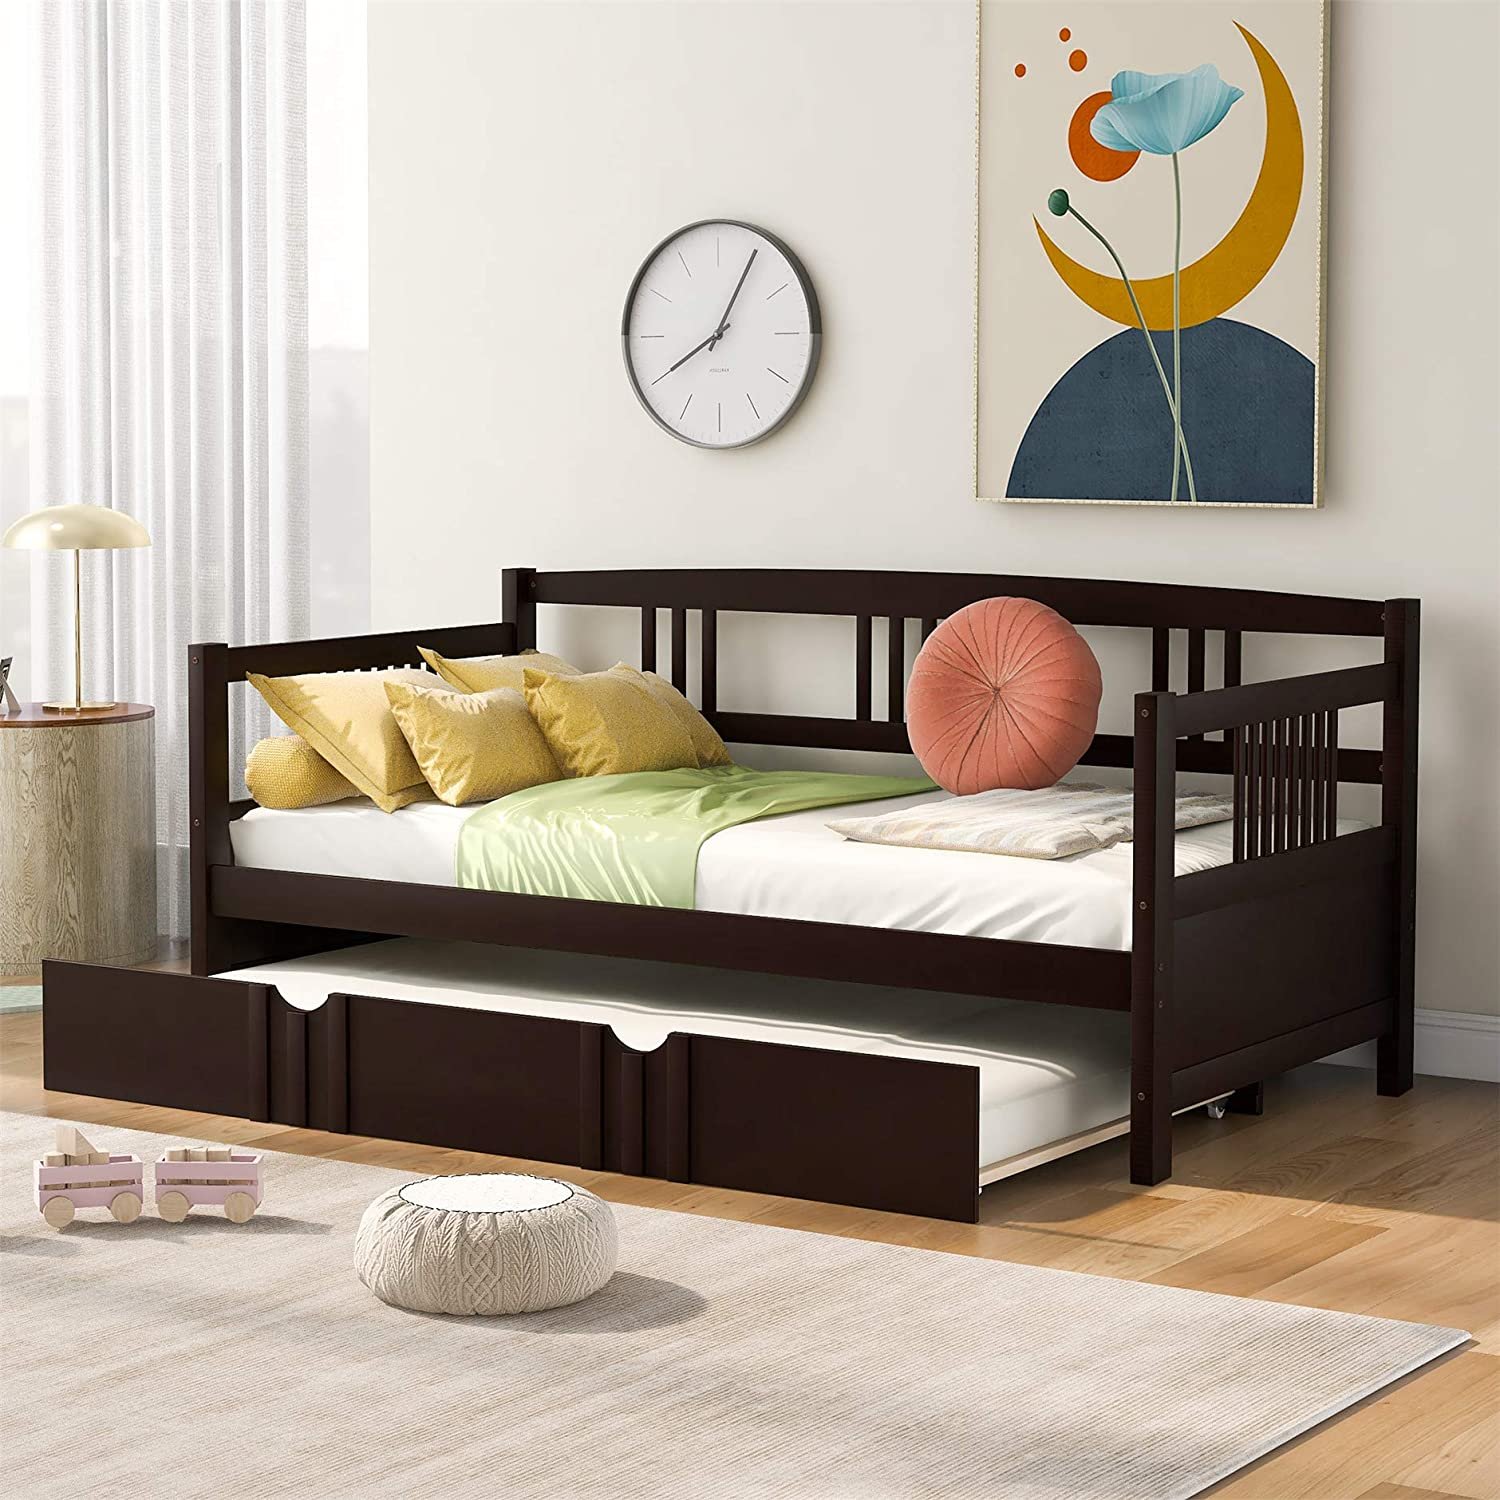 Wood Daybed With A Trundle Trundle Daybed Twin Size Standard Twin Bed Frame No Box Spring Required Espresso Trundle Daybed Kitchen Dining